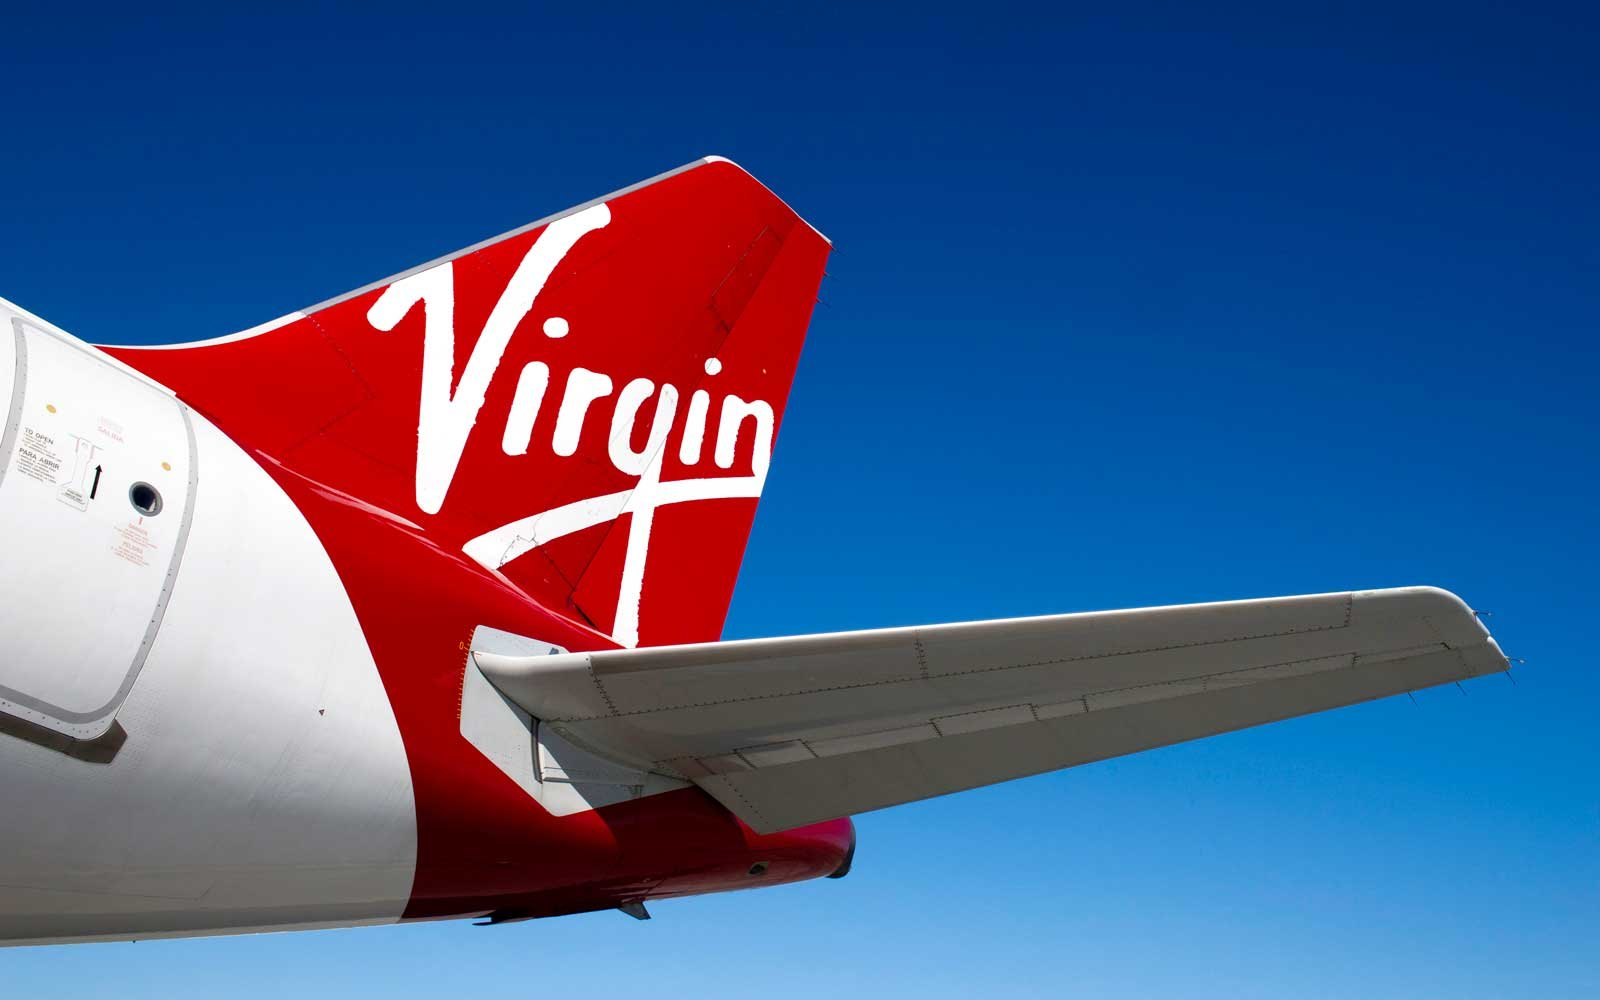 Detail of the tail of a Virgin America plane